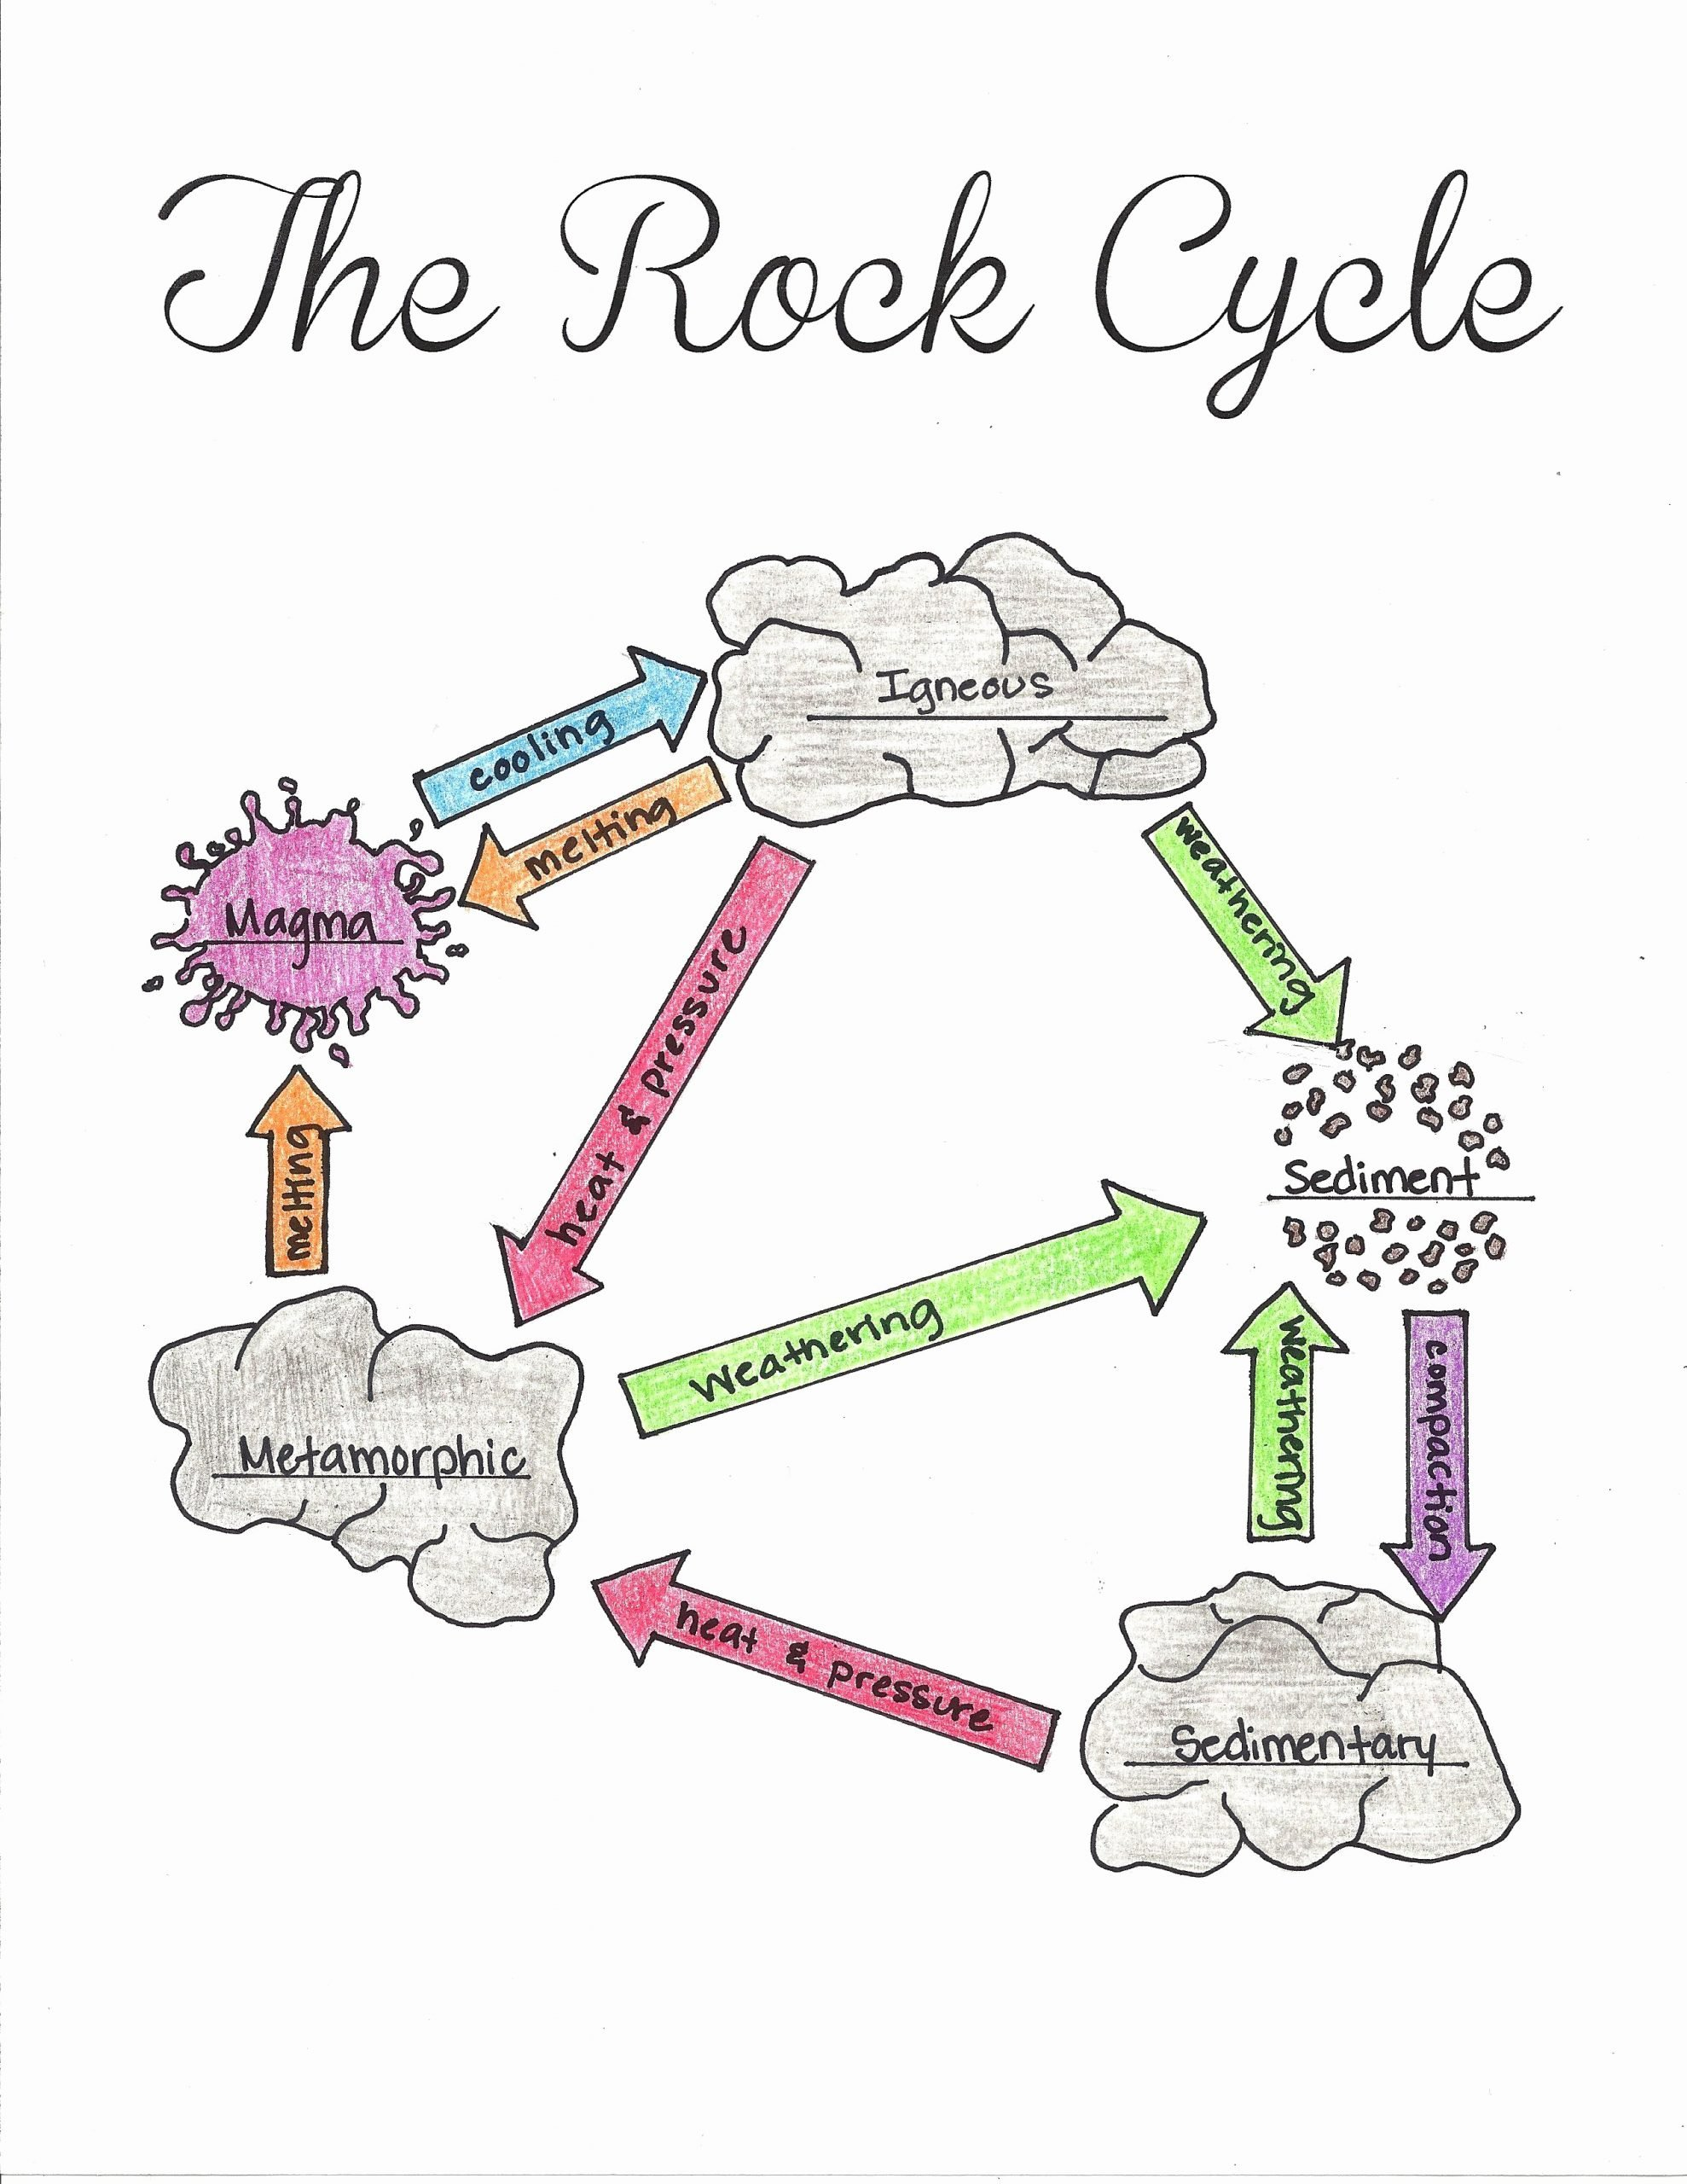 Rock Cycle Worksheet Middle School Lovely the Rock Cycle Pleted Worksheet